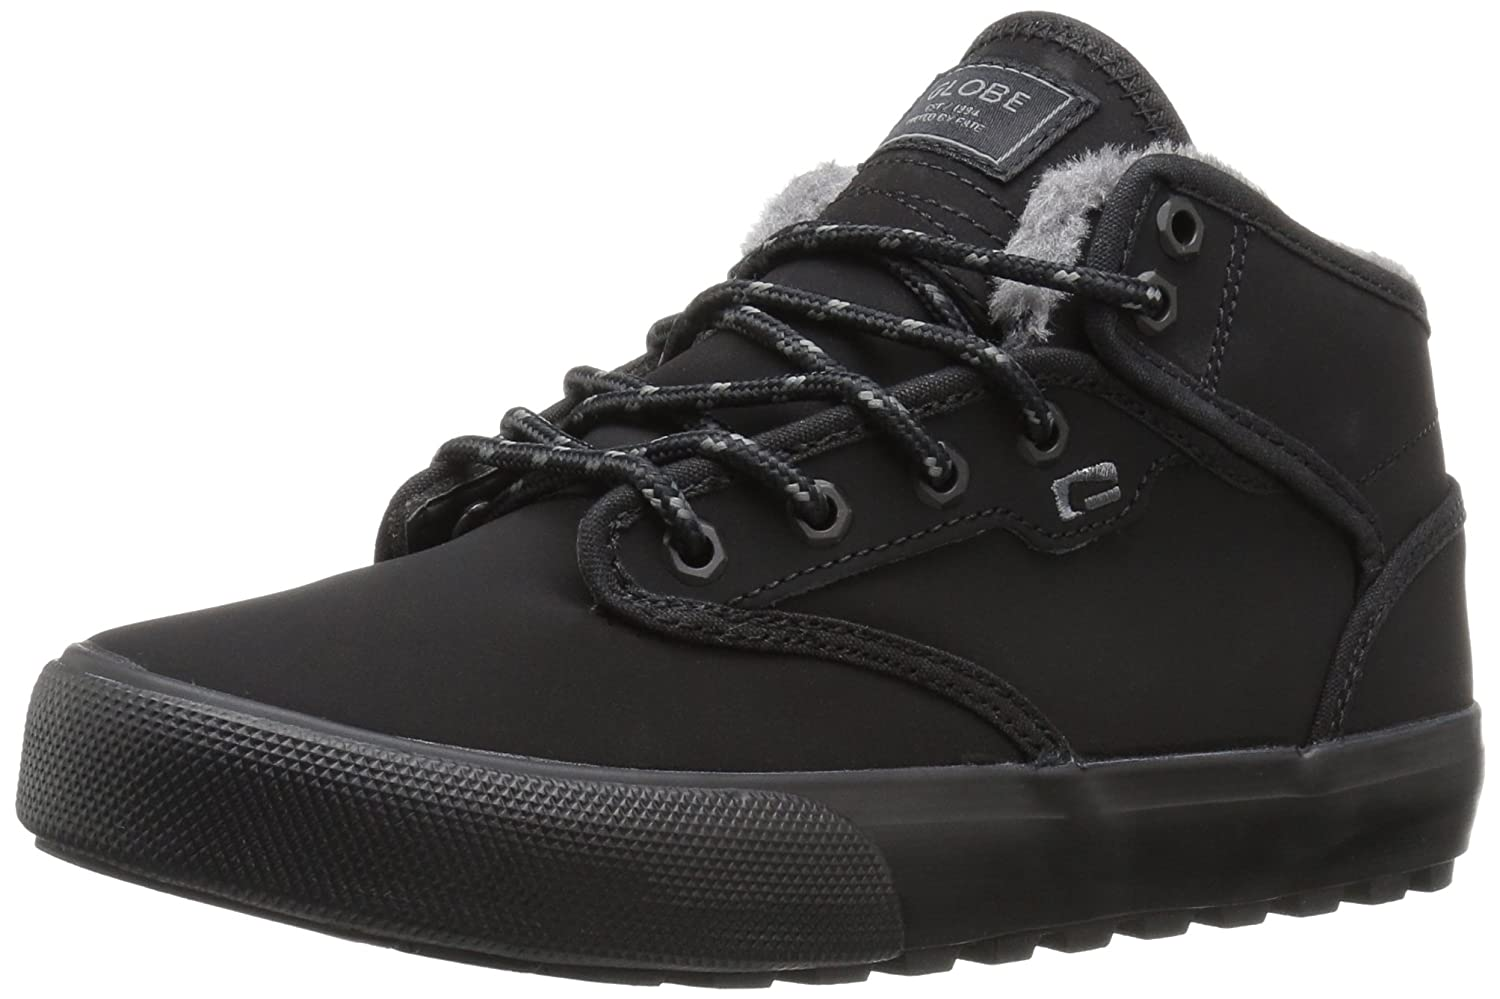 Globe Men's Motley Mid Skate Shoe 8 D(M) US|Black/Black Faux Fur